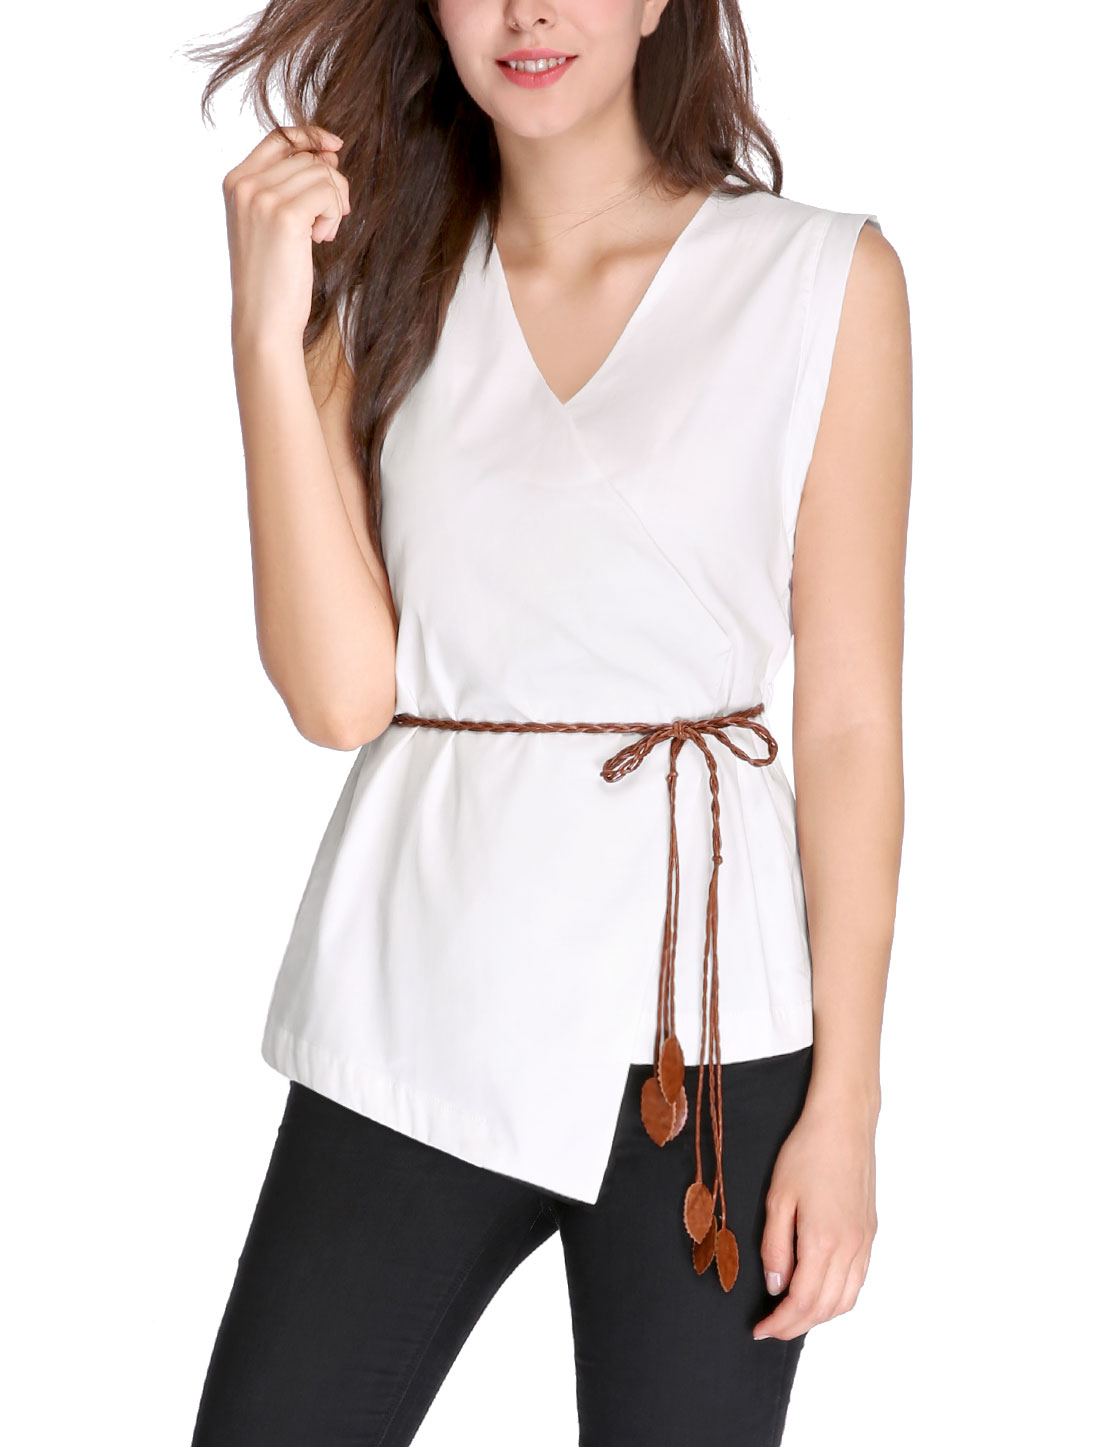 Women V Neck Asymmetric Wrap Front Belted Sleeveless Top White S